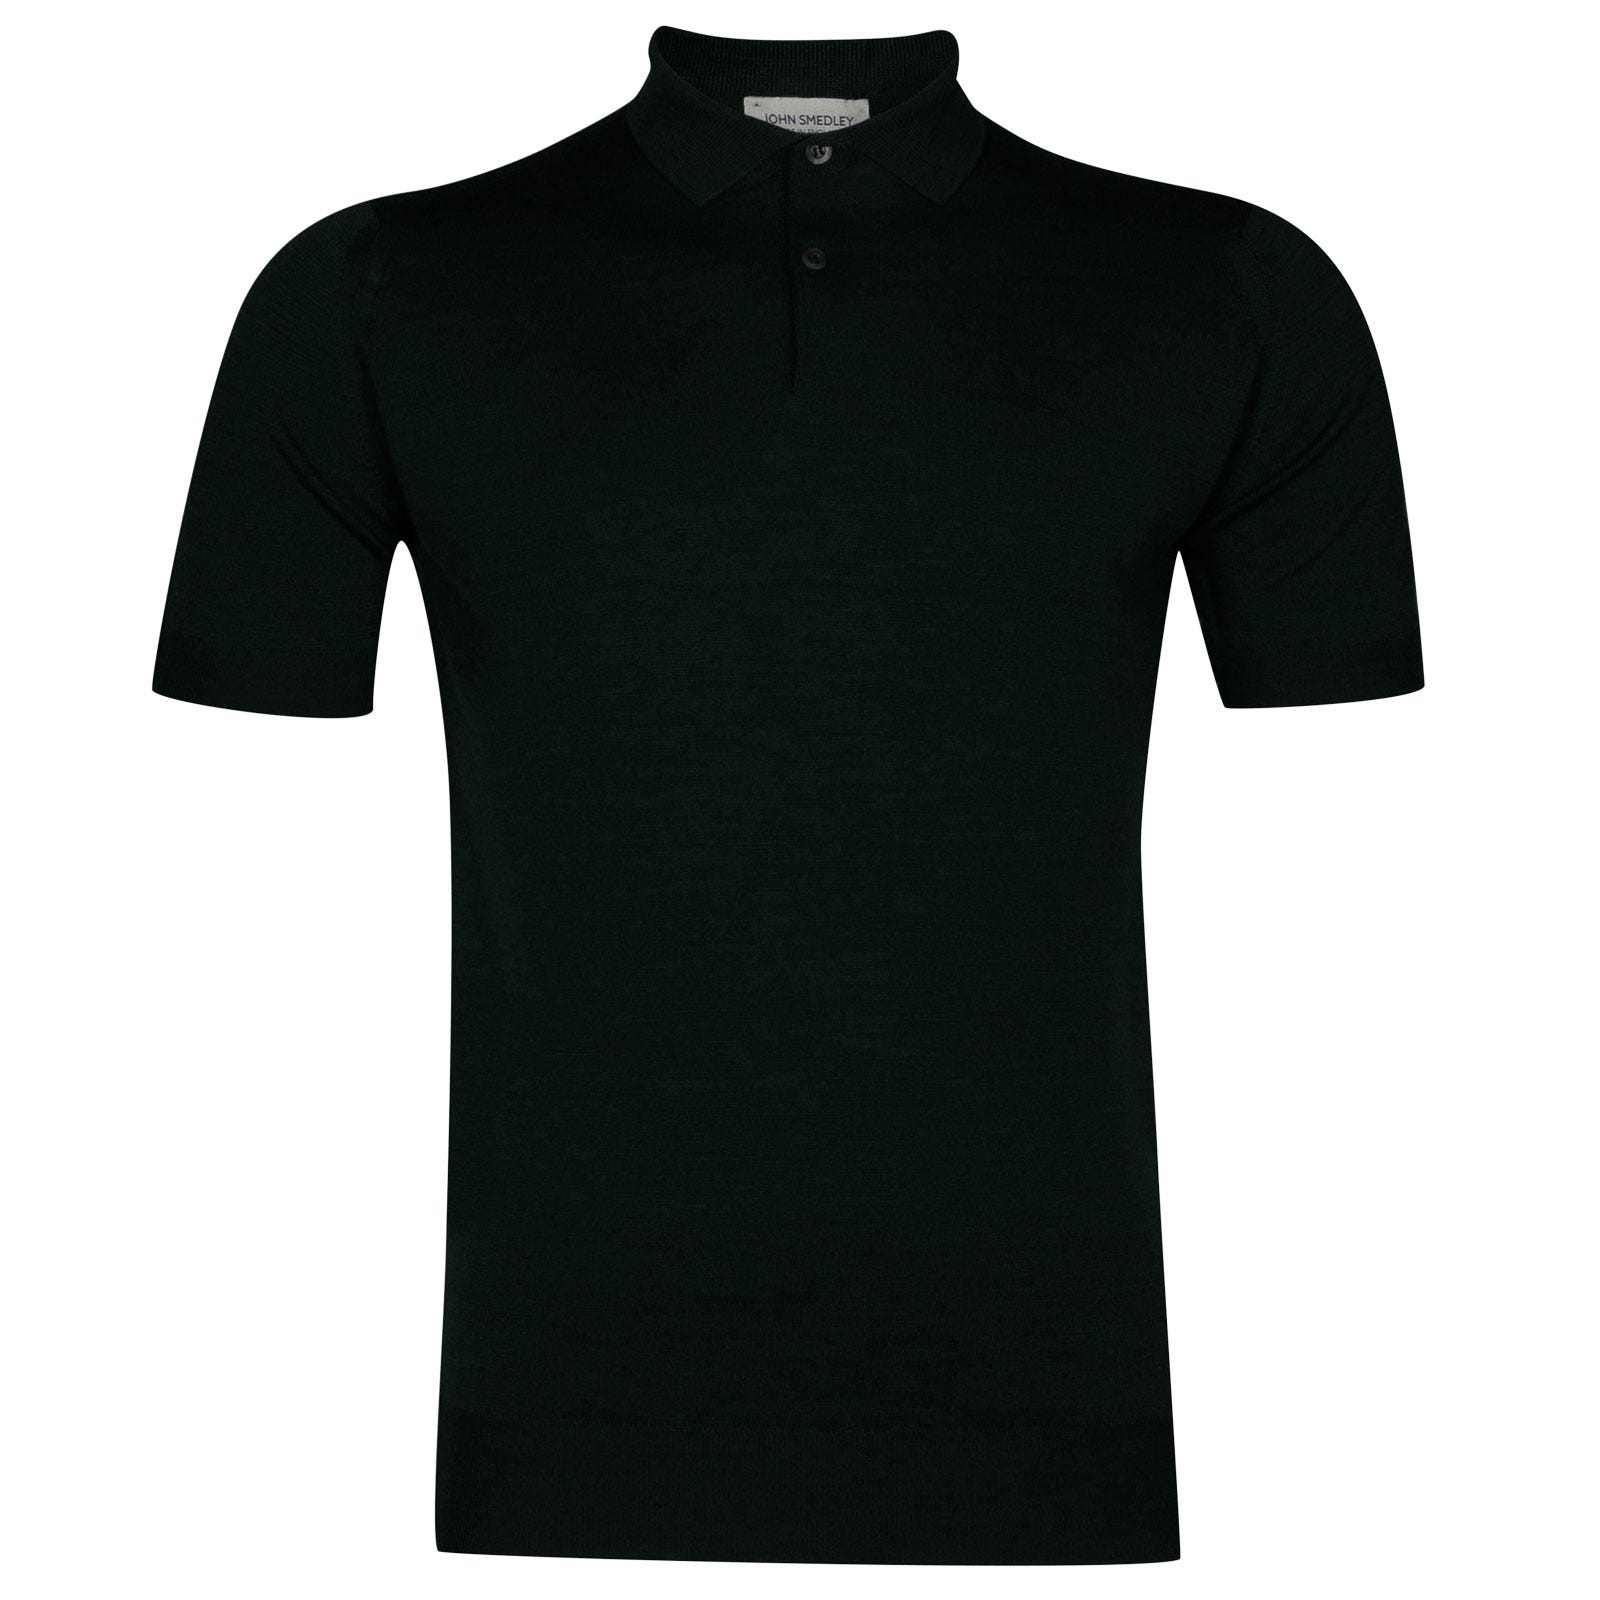 John Smedley payton Merino Wool Shirt in Racing Green-M